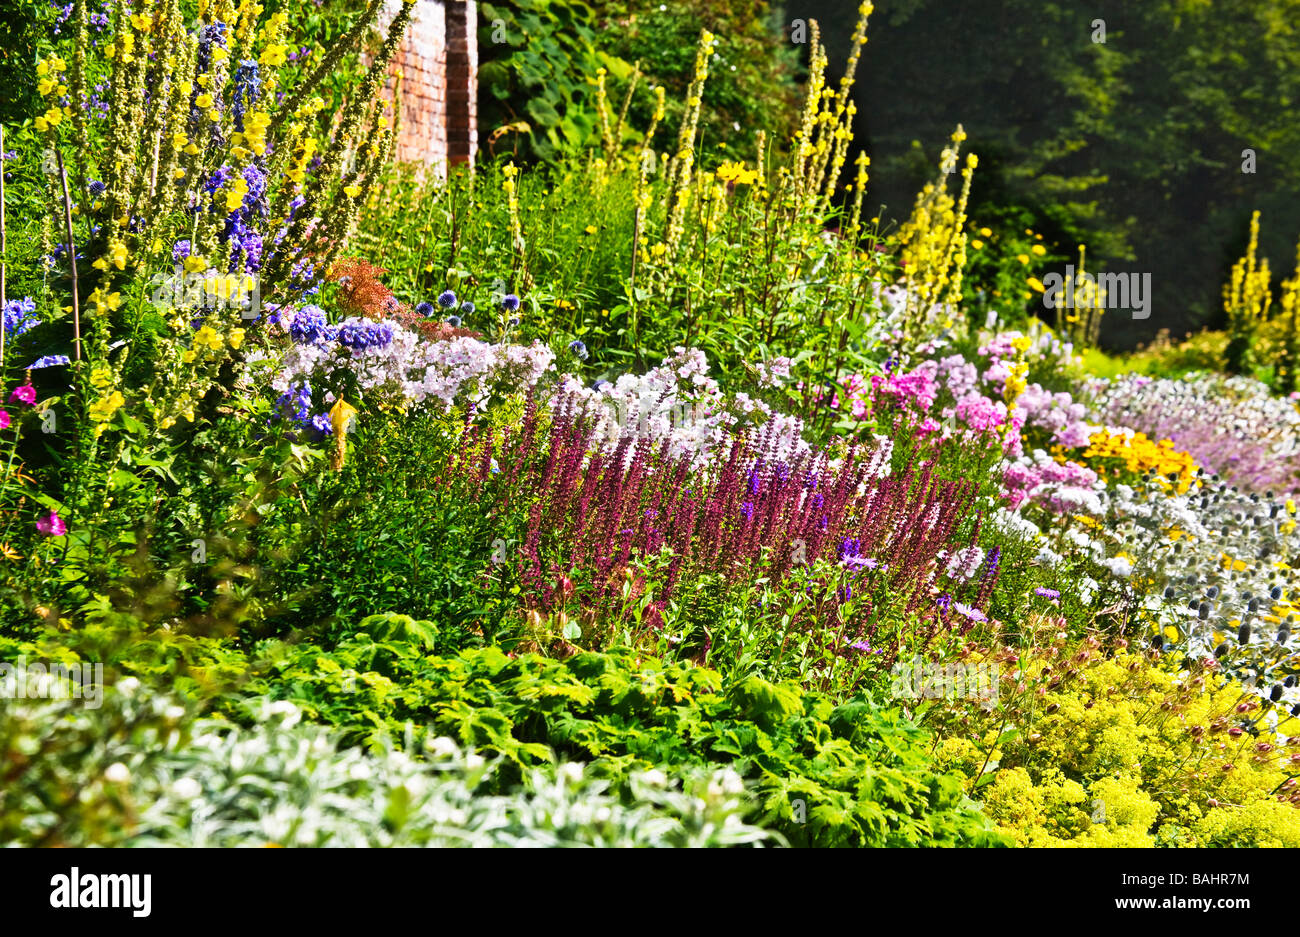 Part of the herbaceous border at Waterperry Gardens, Wheatley, Oxfordshire,Oxon, England, UK - Stock Image